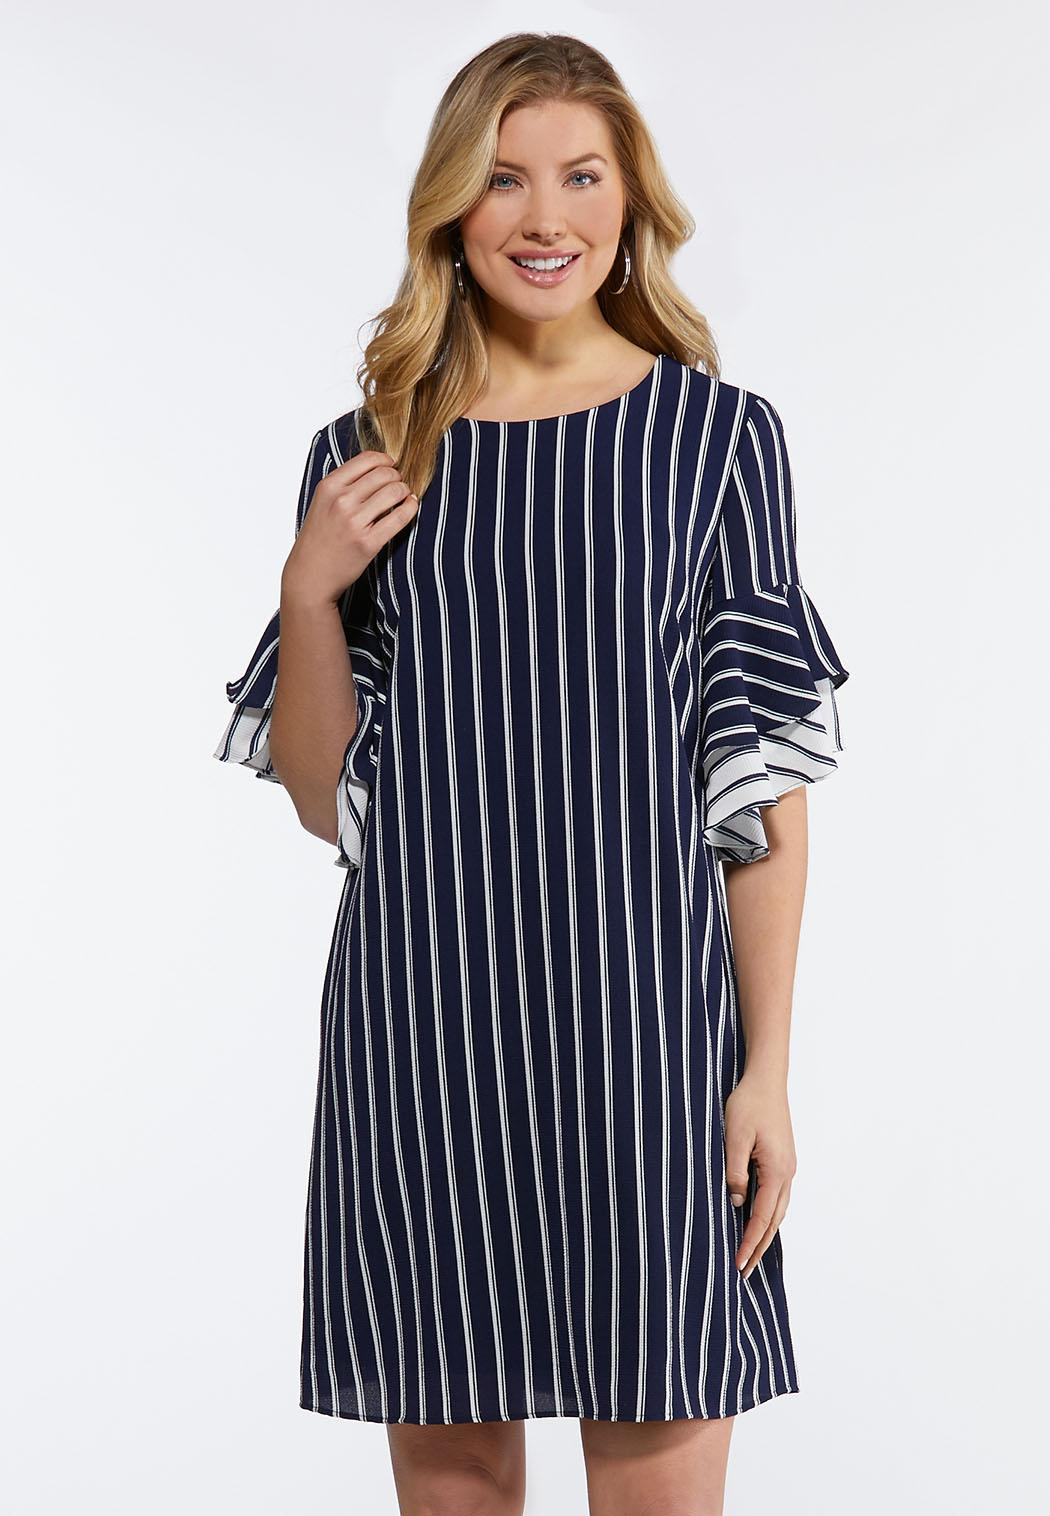 Plus Size Women s A-line and Swing Dresses 702ecb452